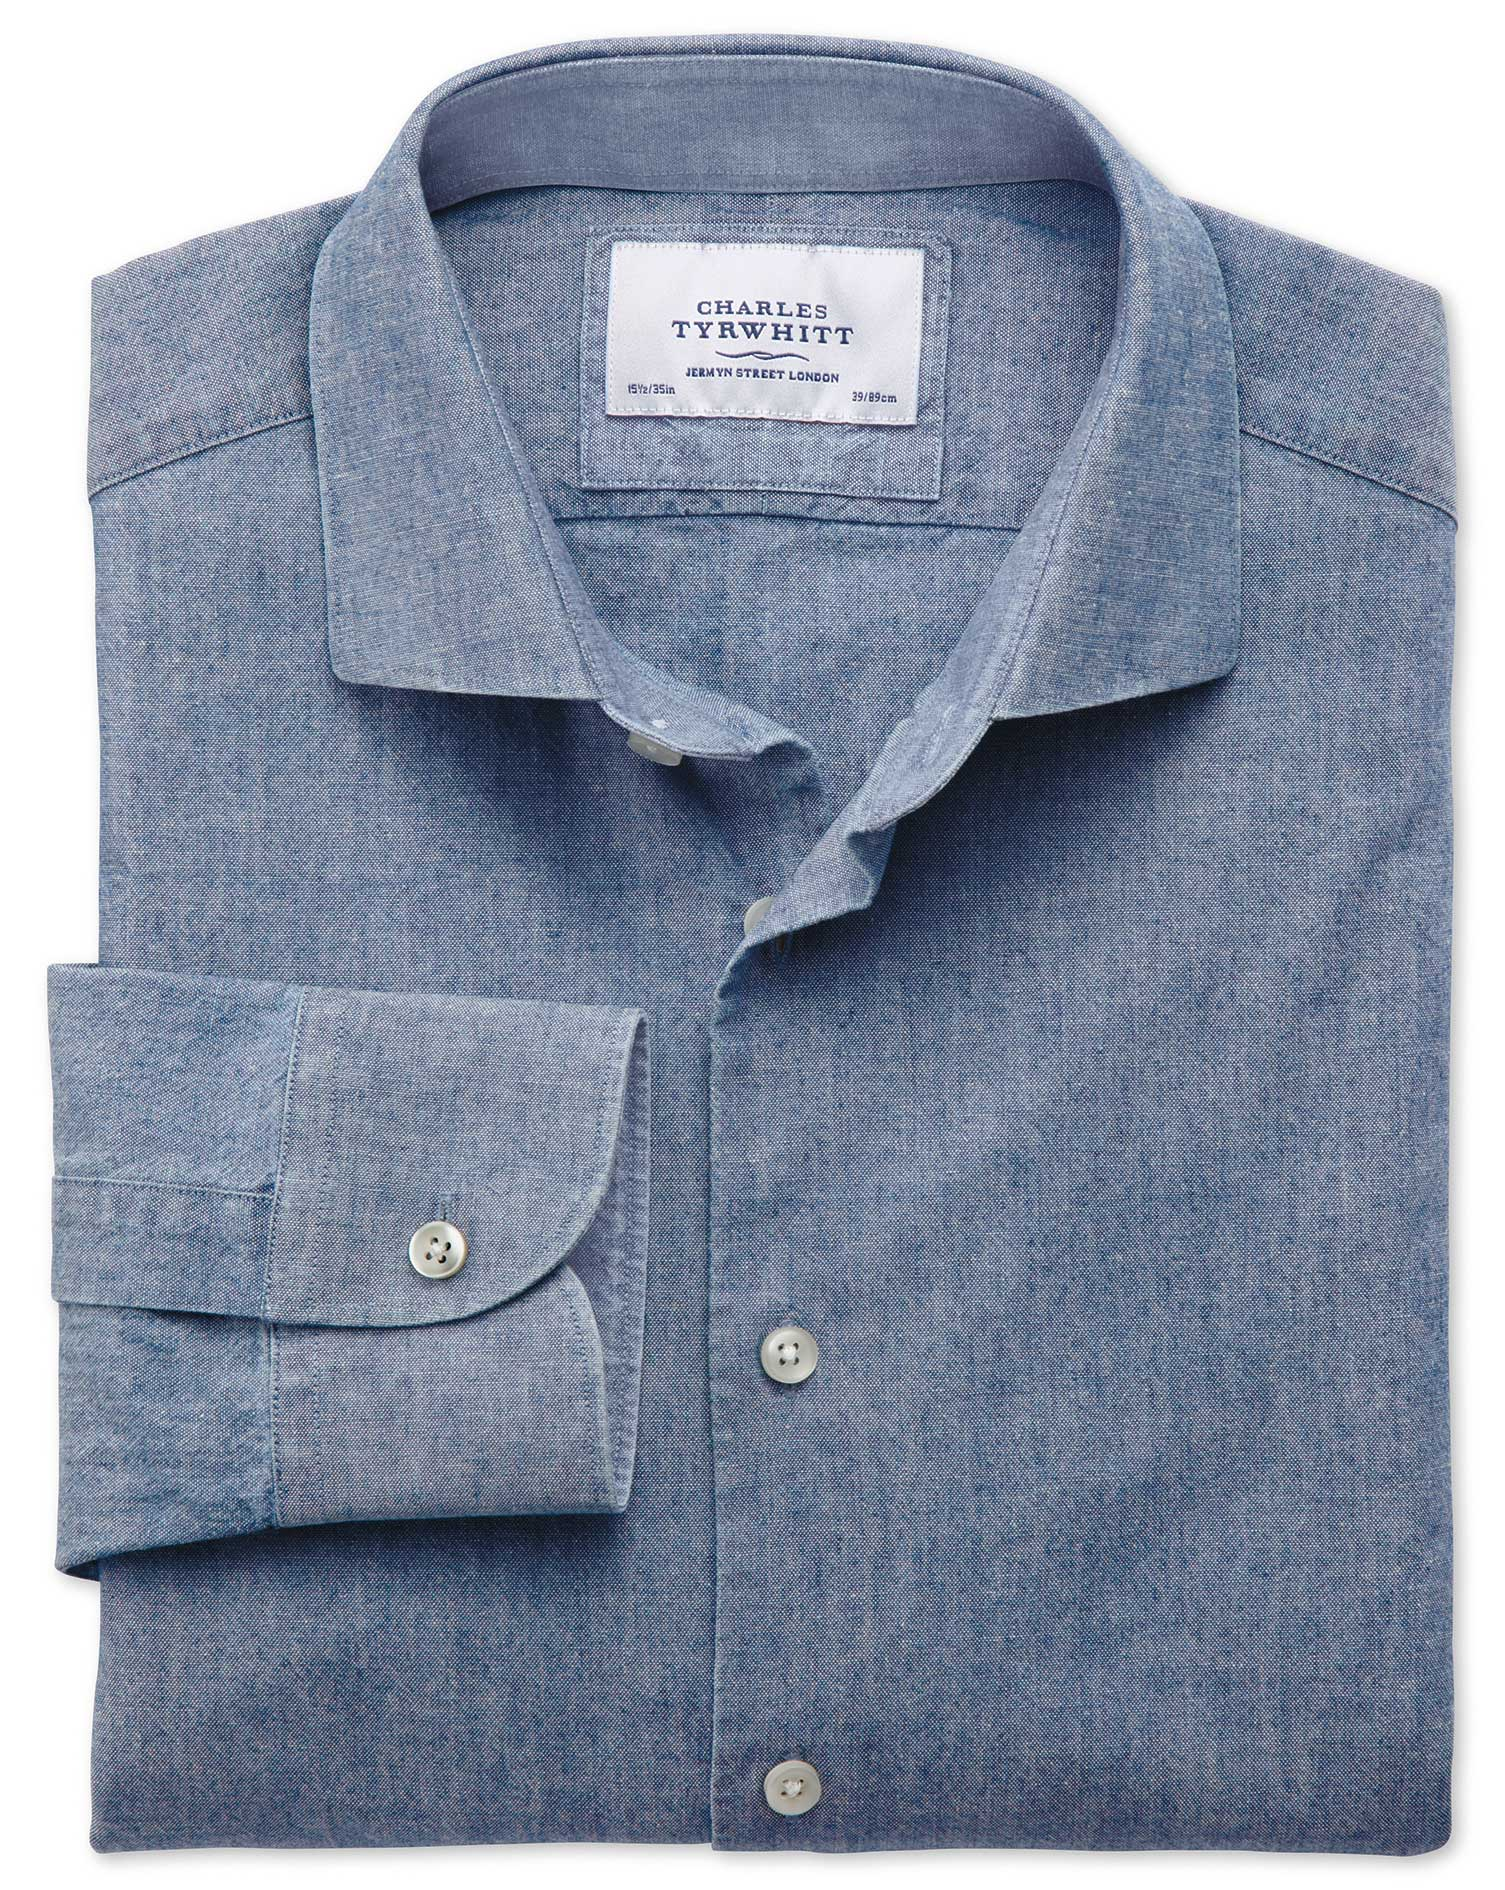 Extra Slim Fit Semi-Cutaway Collar Business Casual Chambray Mid Blue Cotton Formal Shirt Single Cuff